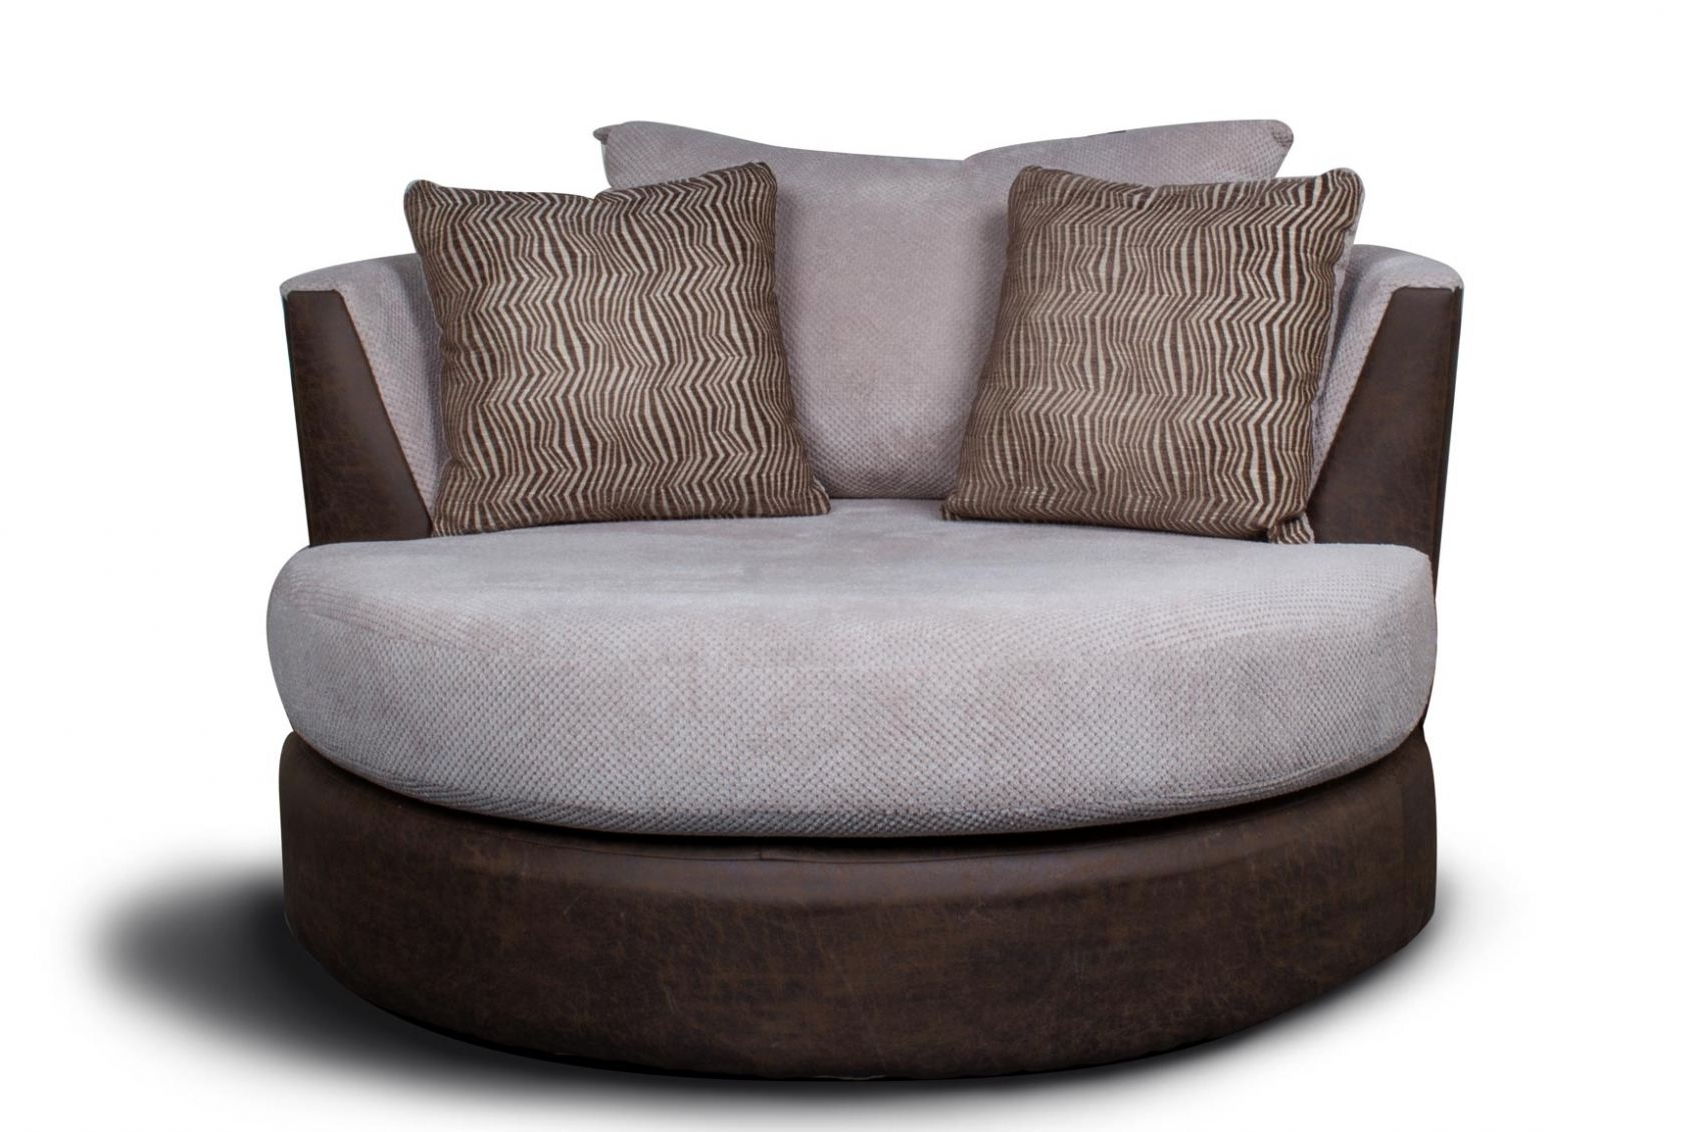 2018 Sofa : Dazzling Round Swivel Sofa Chair Circular Armchair Large In Round Swivel Sofa Chairs (View 2 of 15)